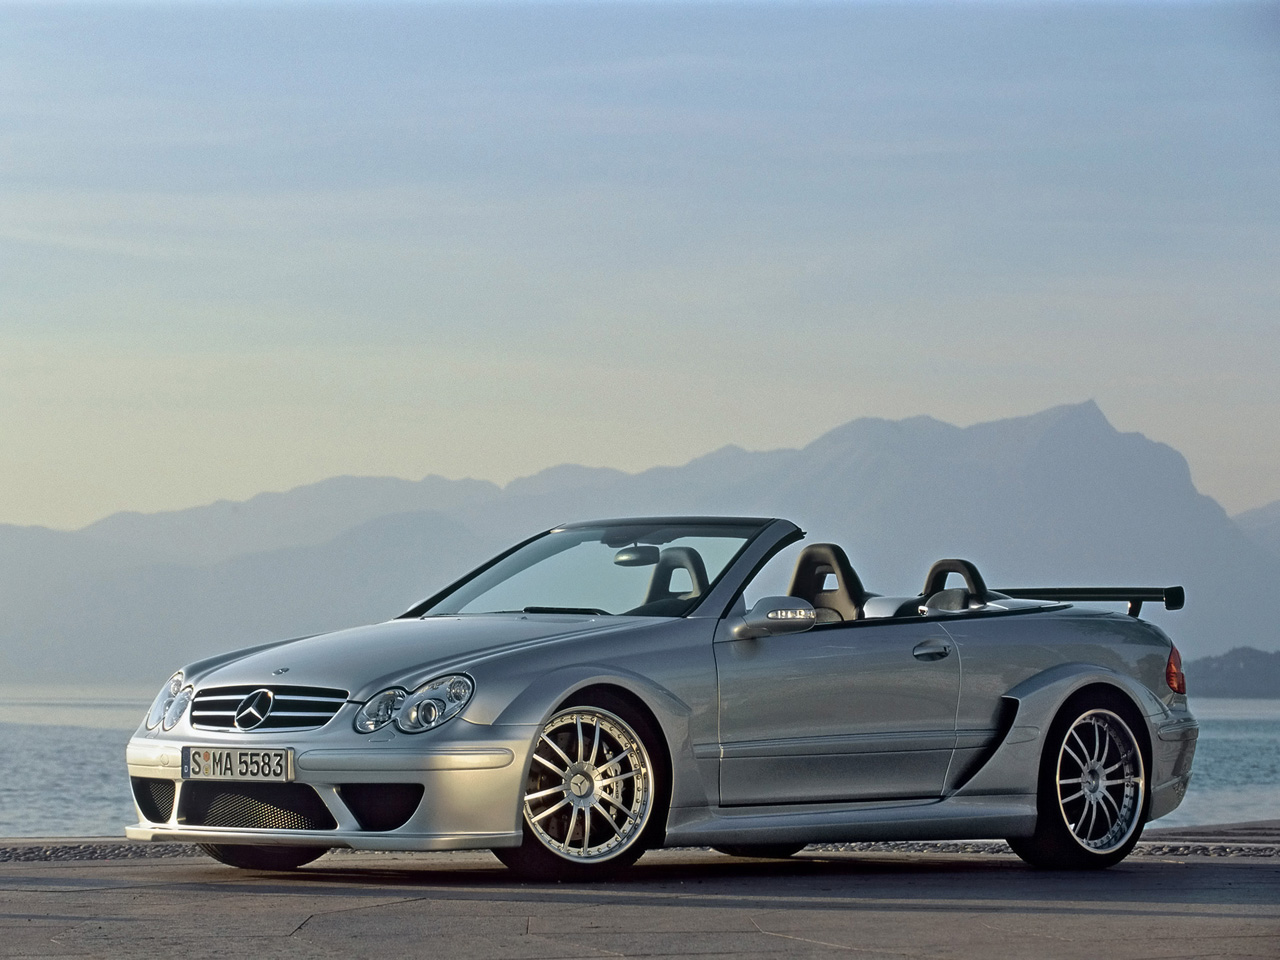 Mercedes benz clk dtm amg picture 7 reviews news for Buying a mercedes benz